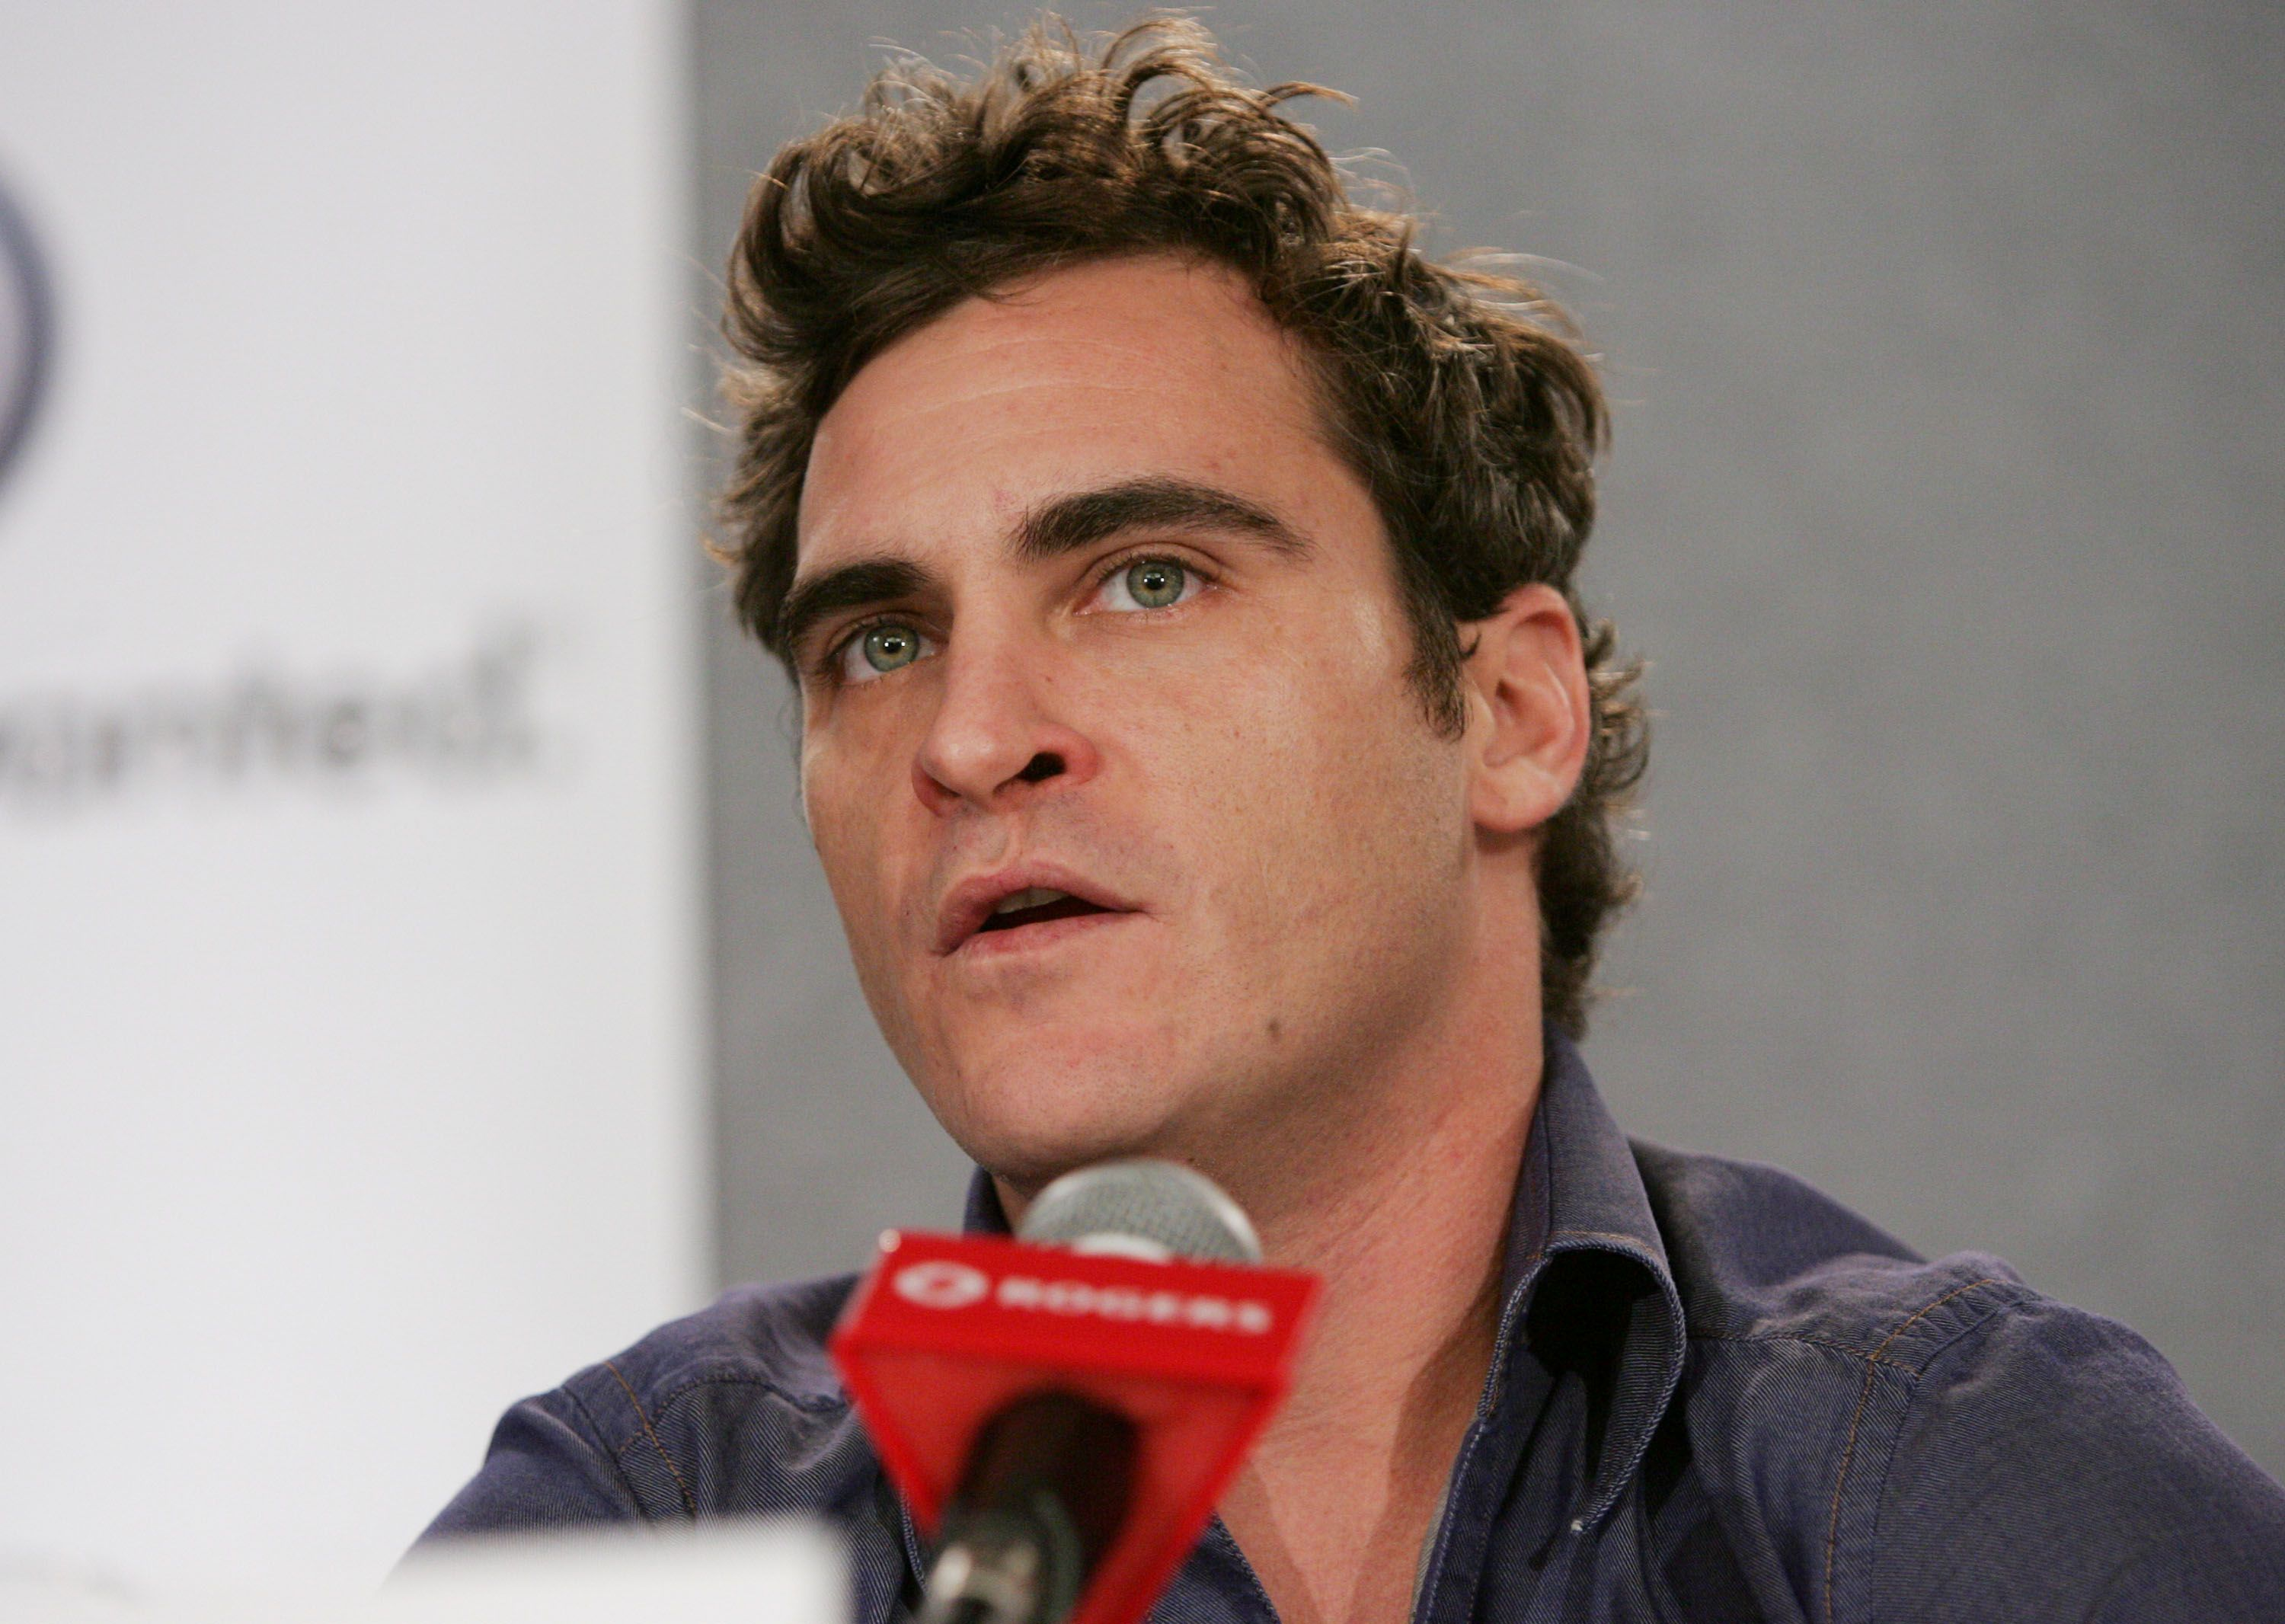 """TORONTO - SEPTEMBER 13: Actor Joaquin Phoenix attends the """"Walk The Line"""" press conference during the 2005 Toronto International Film Festival September 13, 2005 in Toronto, Ontario, Canada. 